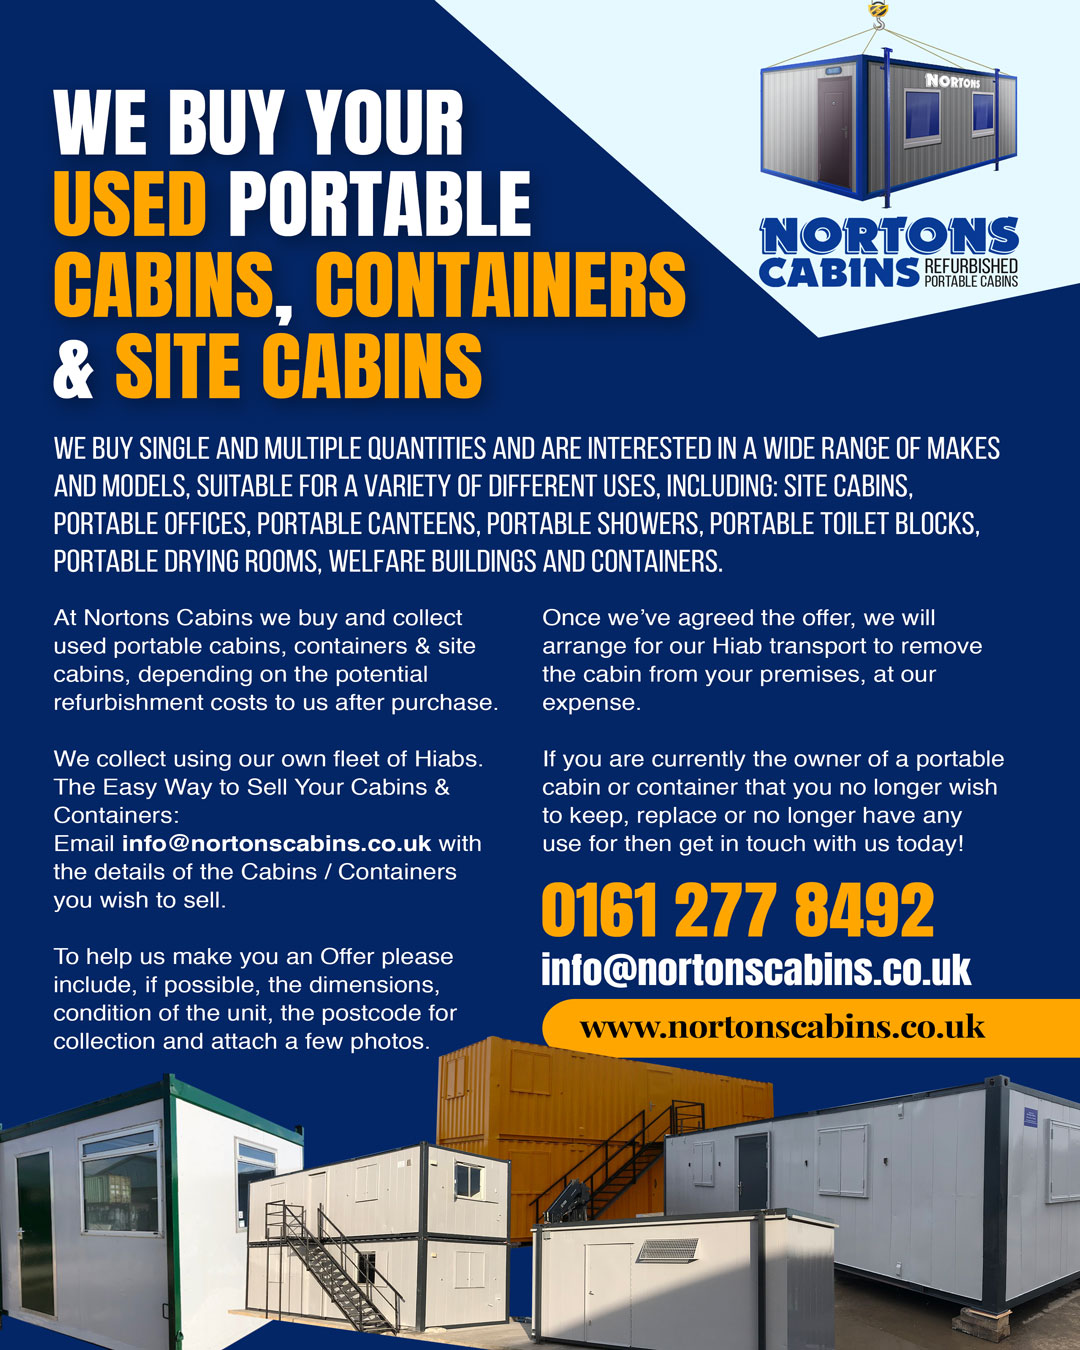 insta-we-buy-nortons-cabins-manchester.jpg